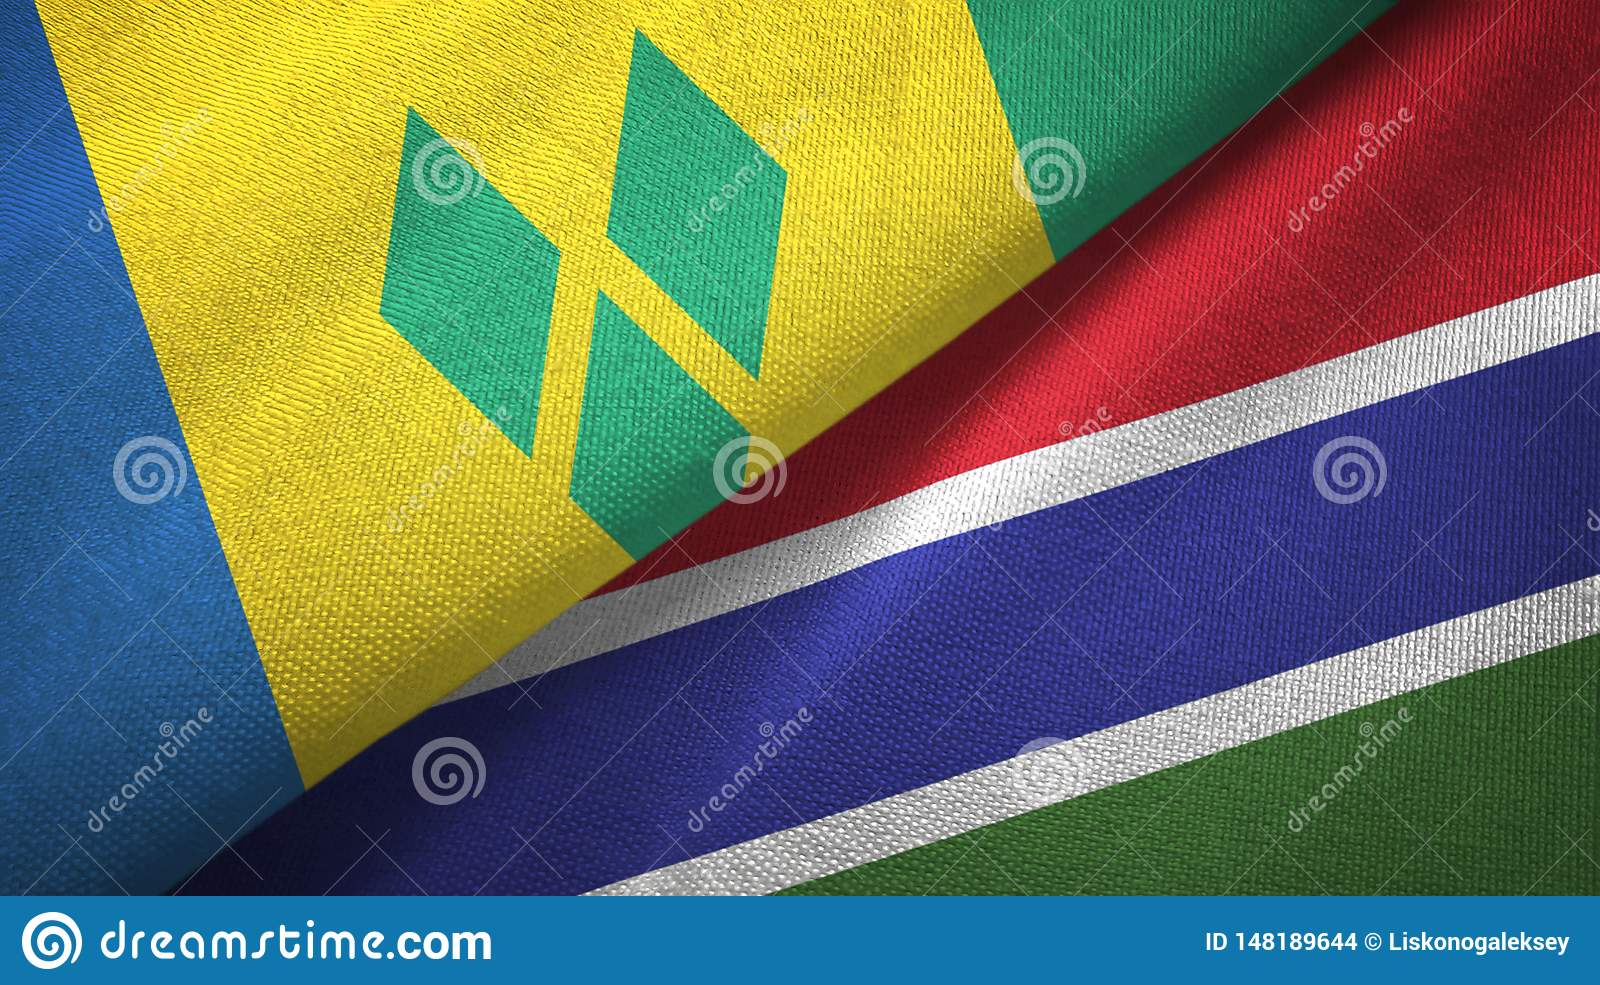 Saint Vincent and the Grenadines and Gambia two flags